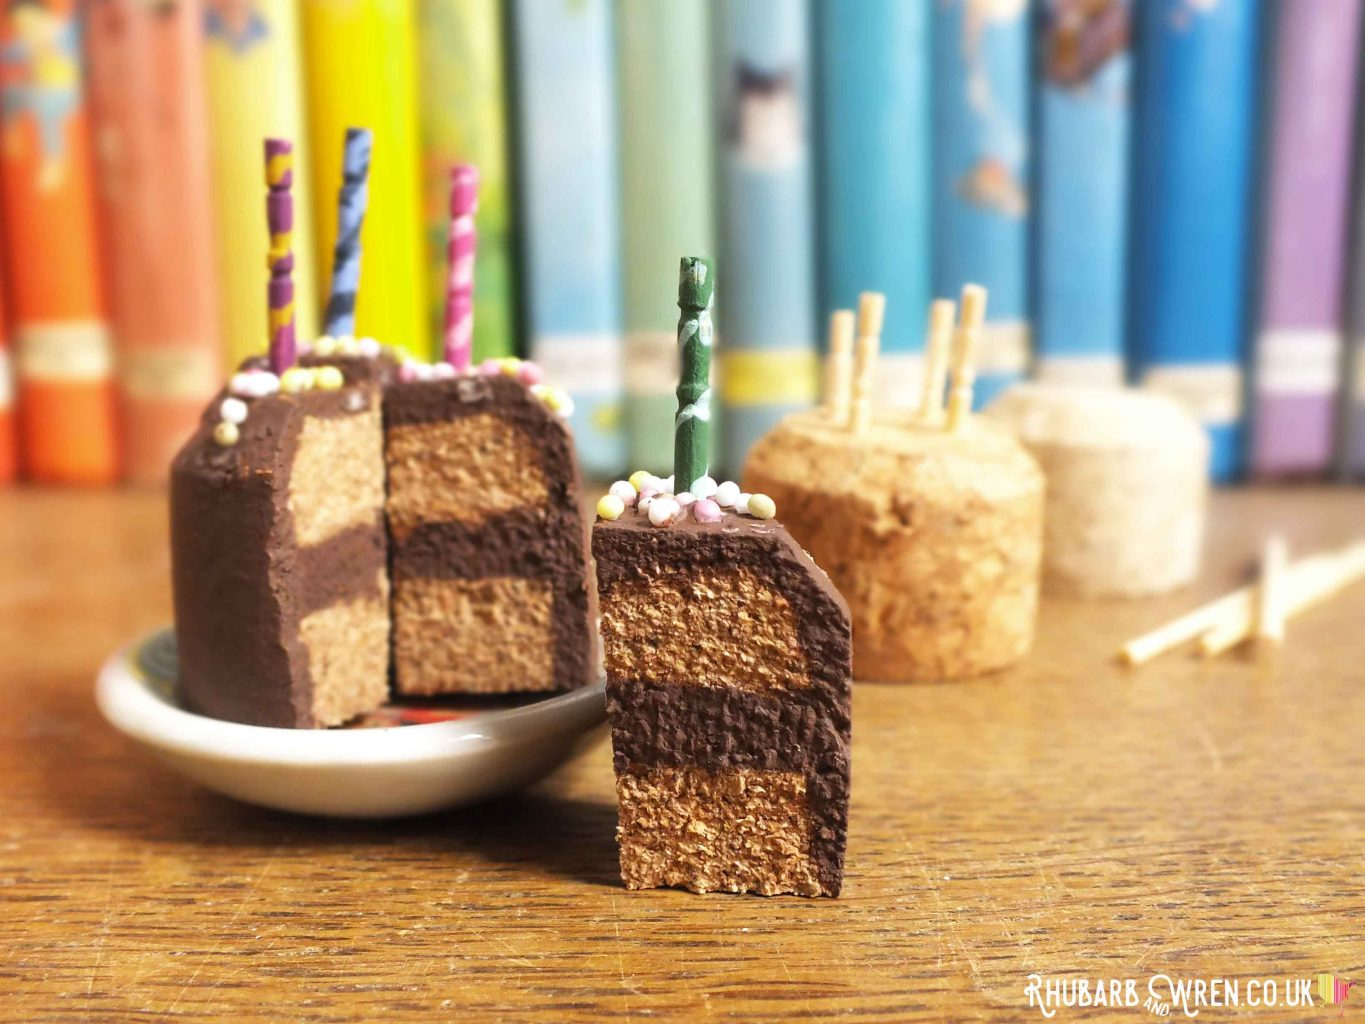 Doll food birthday cake with candles - made from wine cork and toothpicks